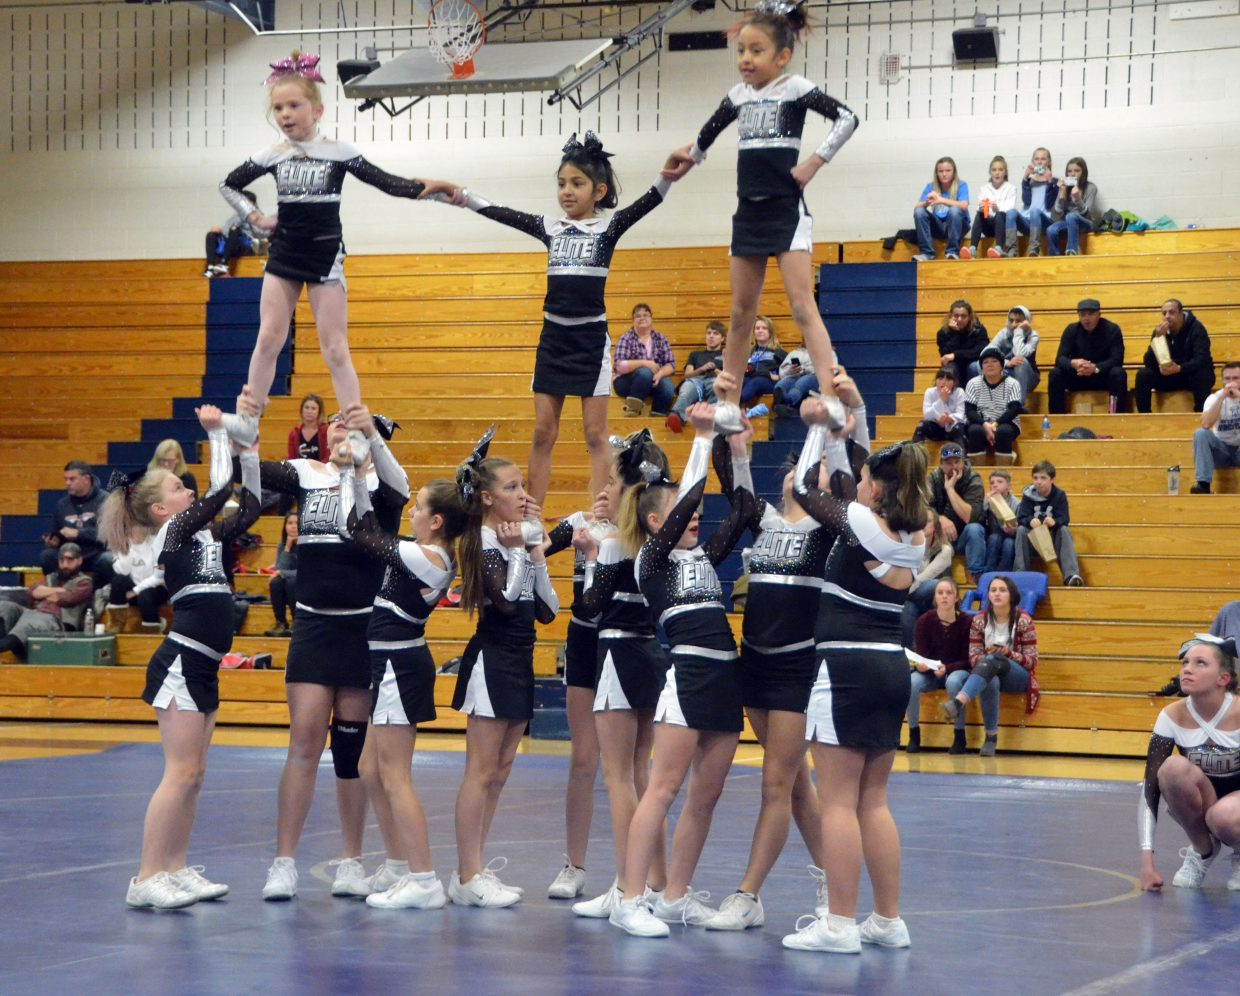 The Moffat County Elite Cheer team poses during their routine between rounds of a Tuesday night triangular wrestling meet.